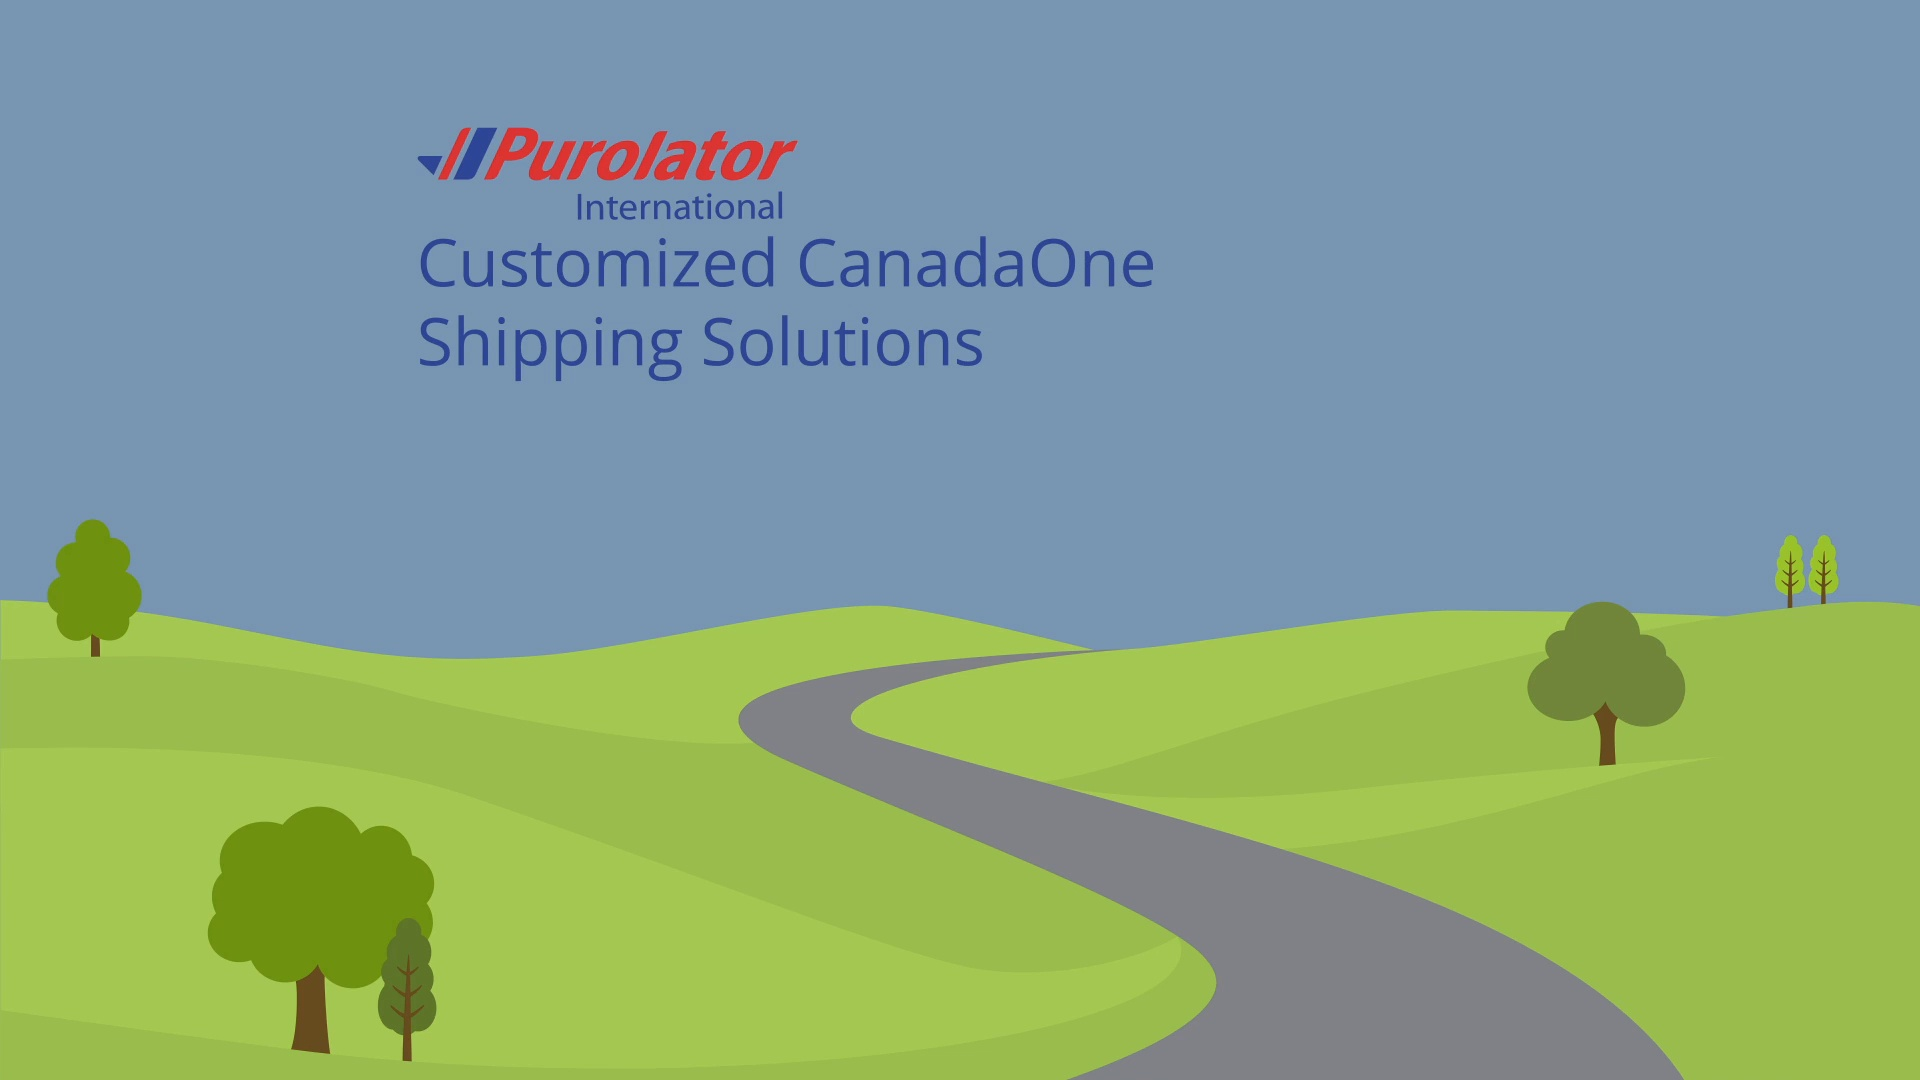 Customized CanadaOne Shipping Solutions